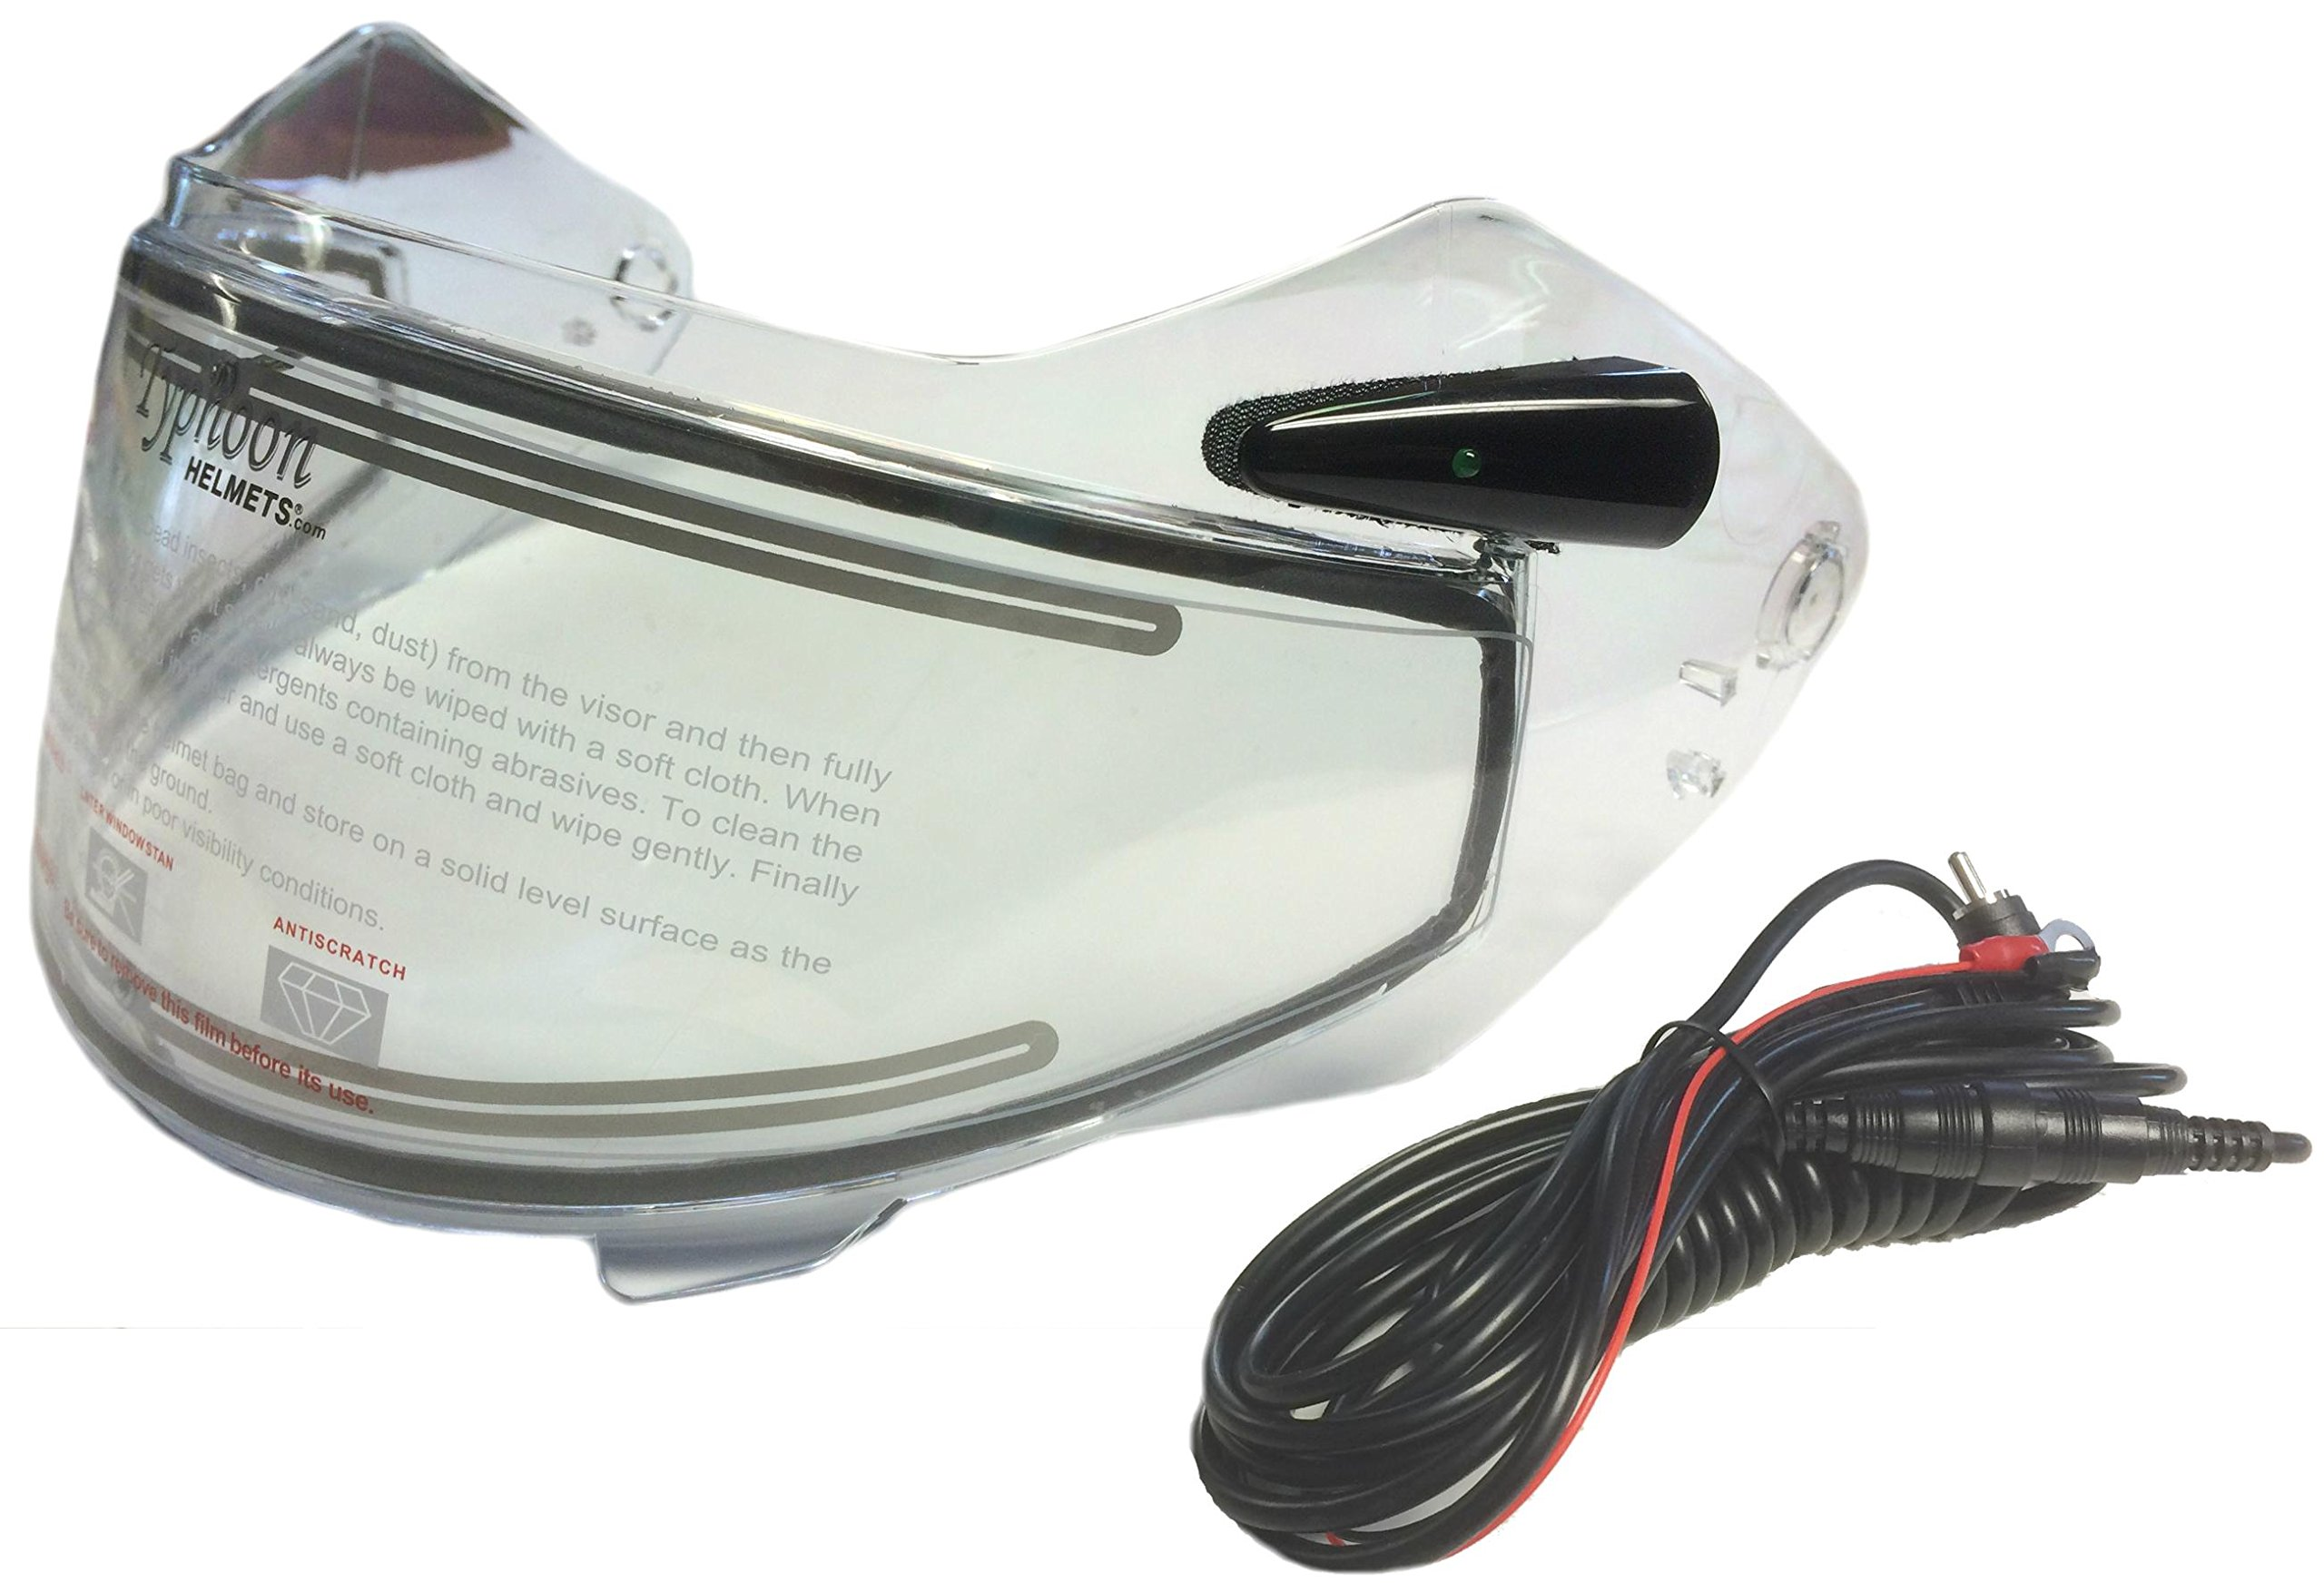 Electric Heated Shield and Cord for Typhoon Helmets G339 Adult Snowmobile Helmet